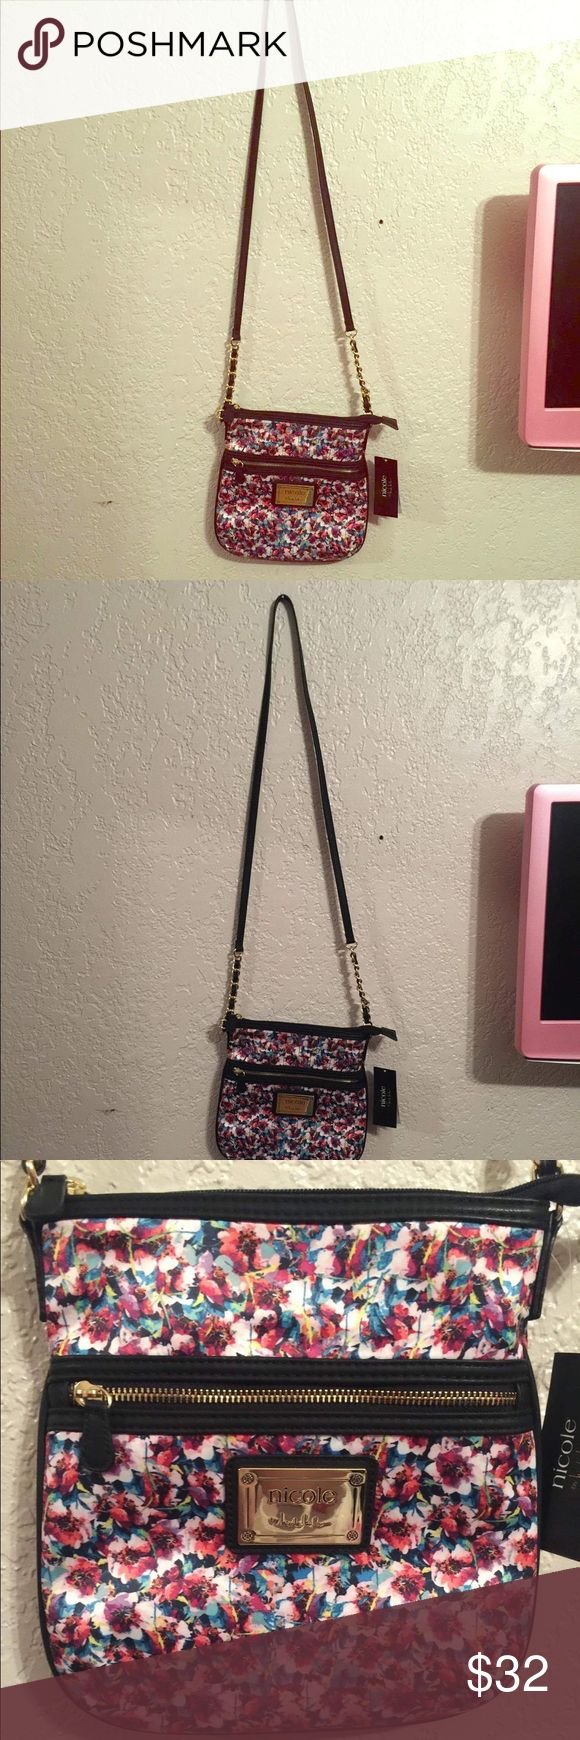 NWT Nicole by Nicole Miller floral crossbody purse Brand new with tags! This purse really gives me Betsey Johnson vibes. I love it. Super cute pattern that will match just about everything! Also has adorable gold chain detailing (as pictured). Price is firm. Was originally $50. Nicole by Nicole Miller Bags Crossbody Bags